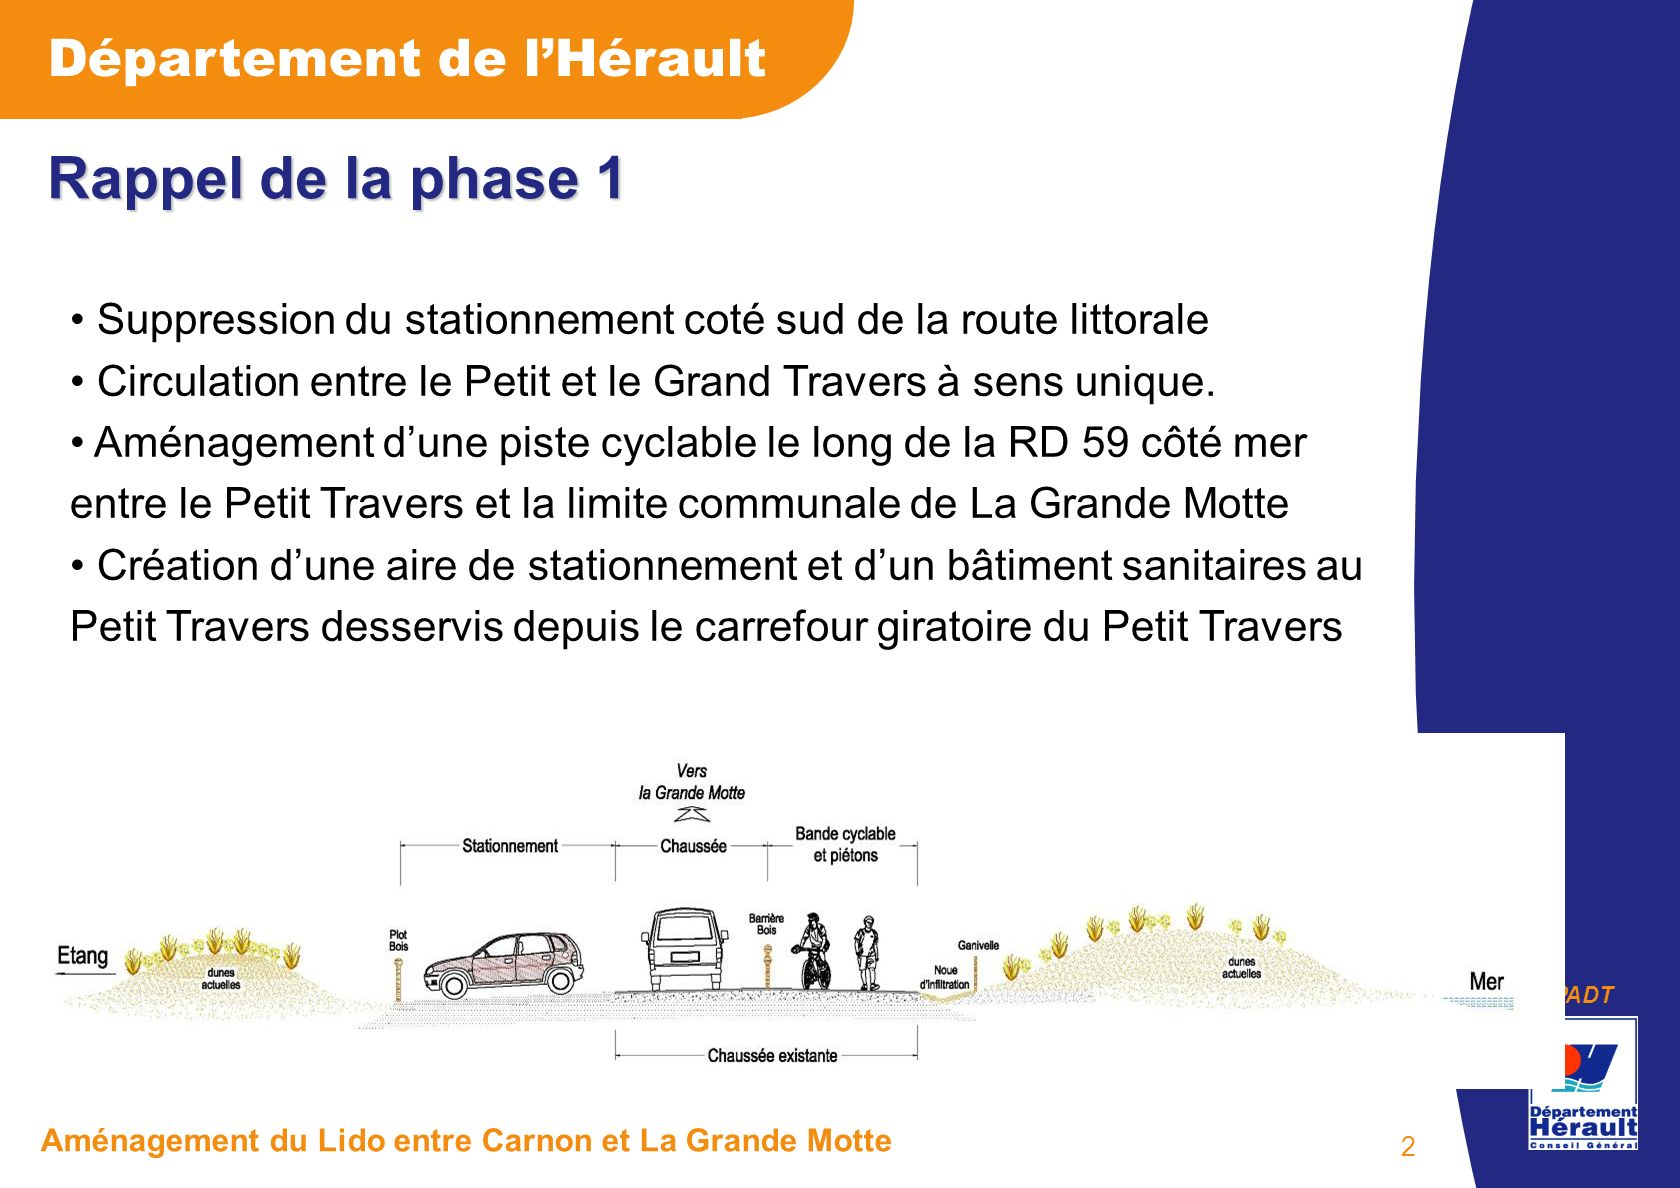 Rappel de la phase 1 Suppression du stationnement coté sud de la route littorale. Circulation entre le Petit et le Grand Travers à sens unique.